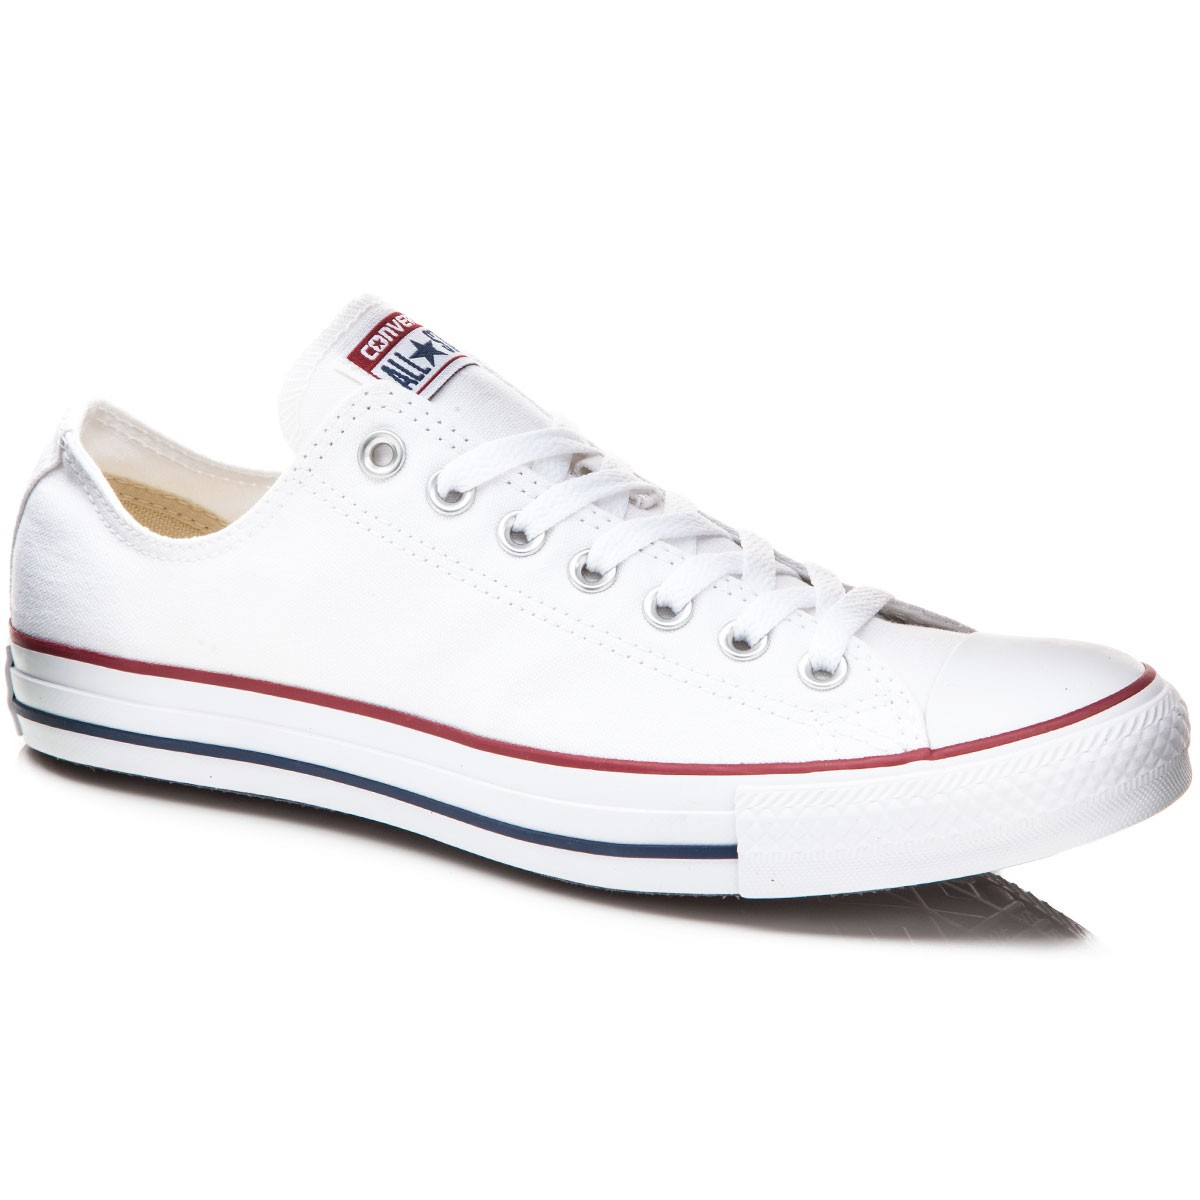 11d295072e1033 ... where can i buy converse white low cut price philippines 2c8c1 8988f